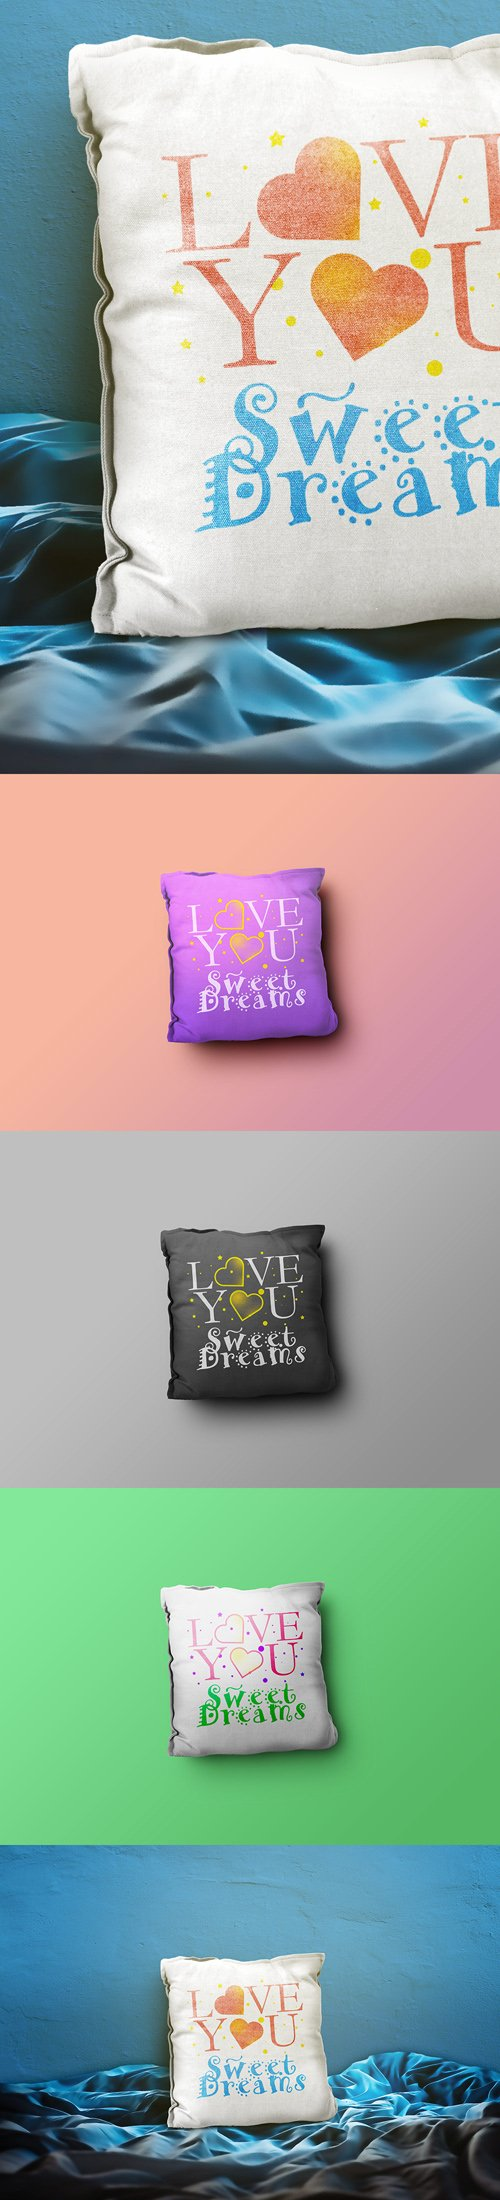 Pillow PSD Mockup Templates